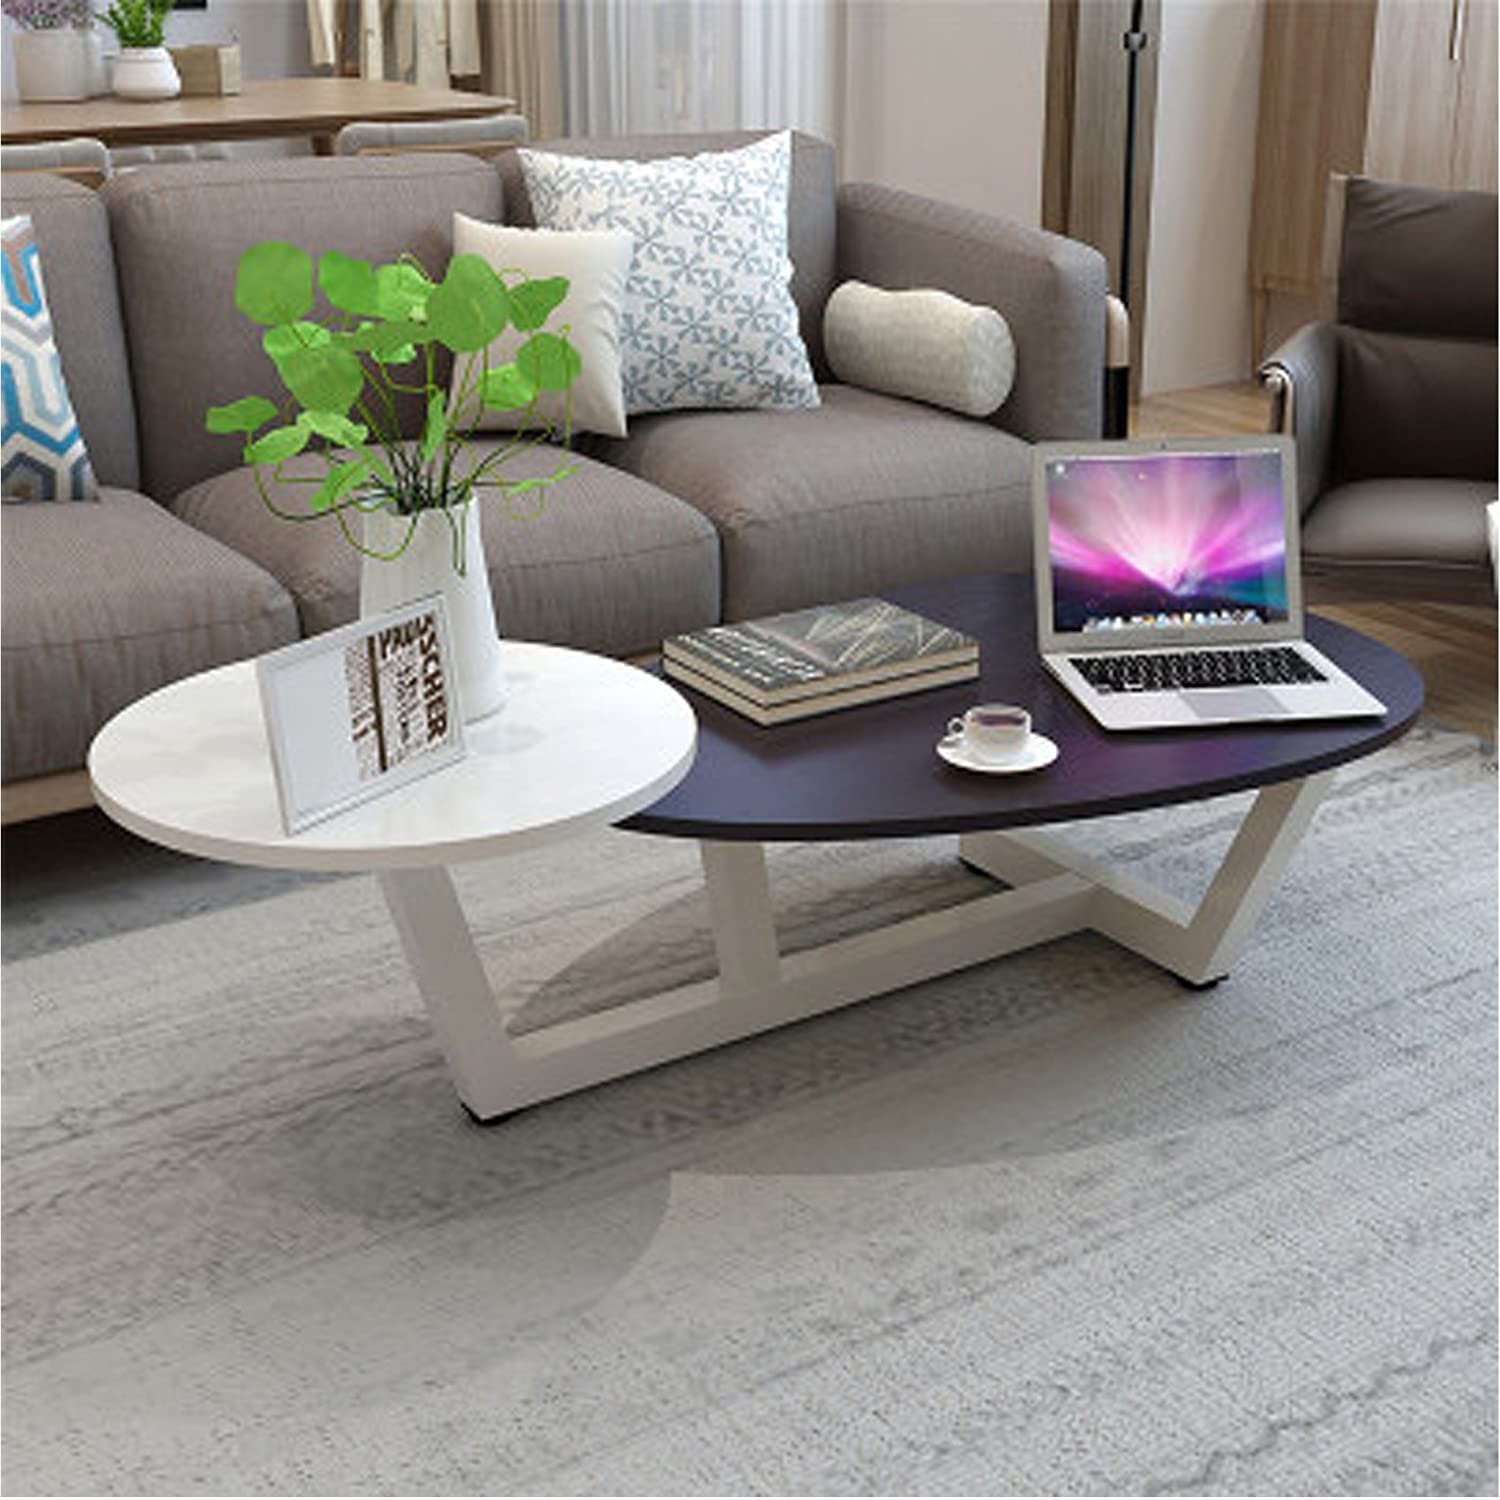 Delicieux TUORUI Small Coffee Table, Tea Table,2 Tiered Sofa Table, Living Room  Furniture, Simple End Table, For Small Apartment,Round + Drop Shaped, Mixed  Material, ...